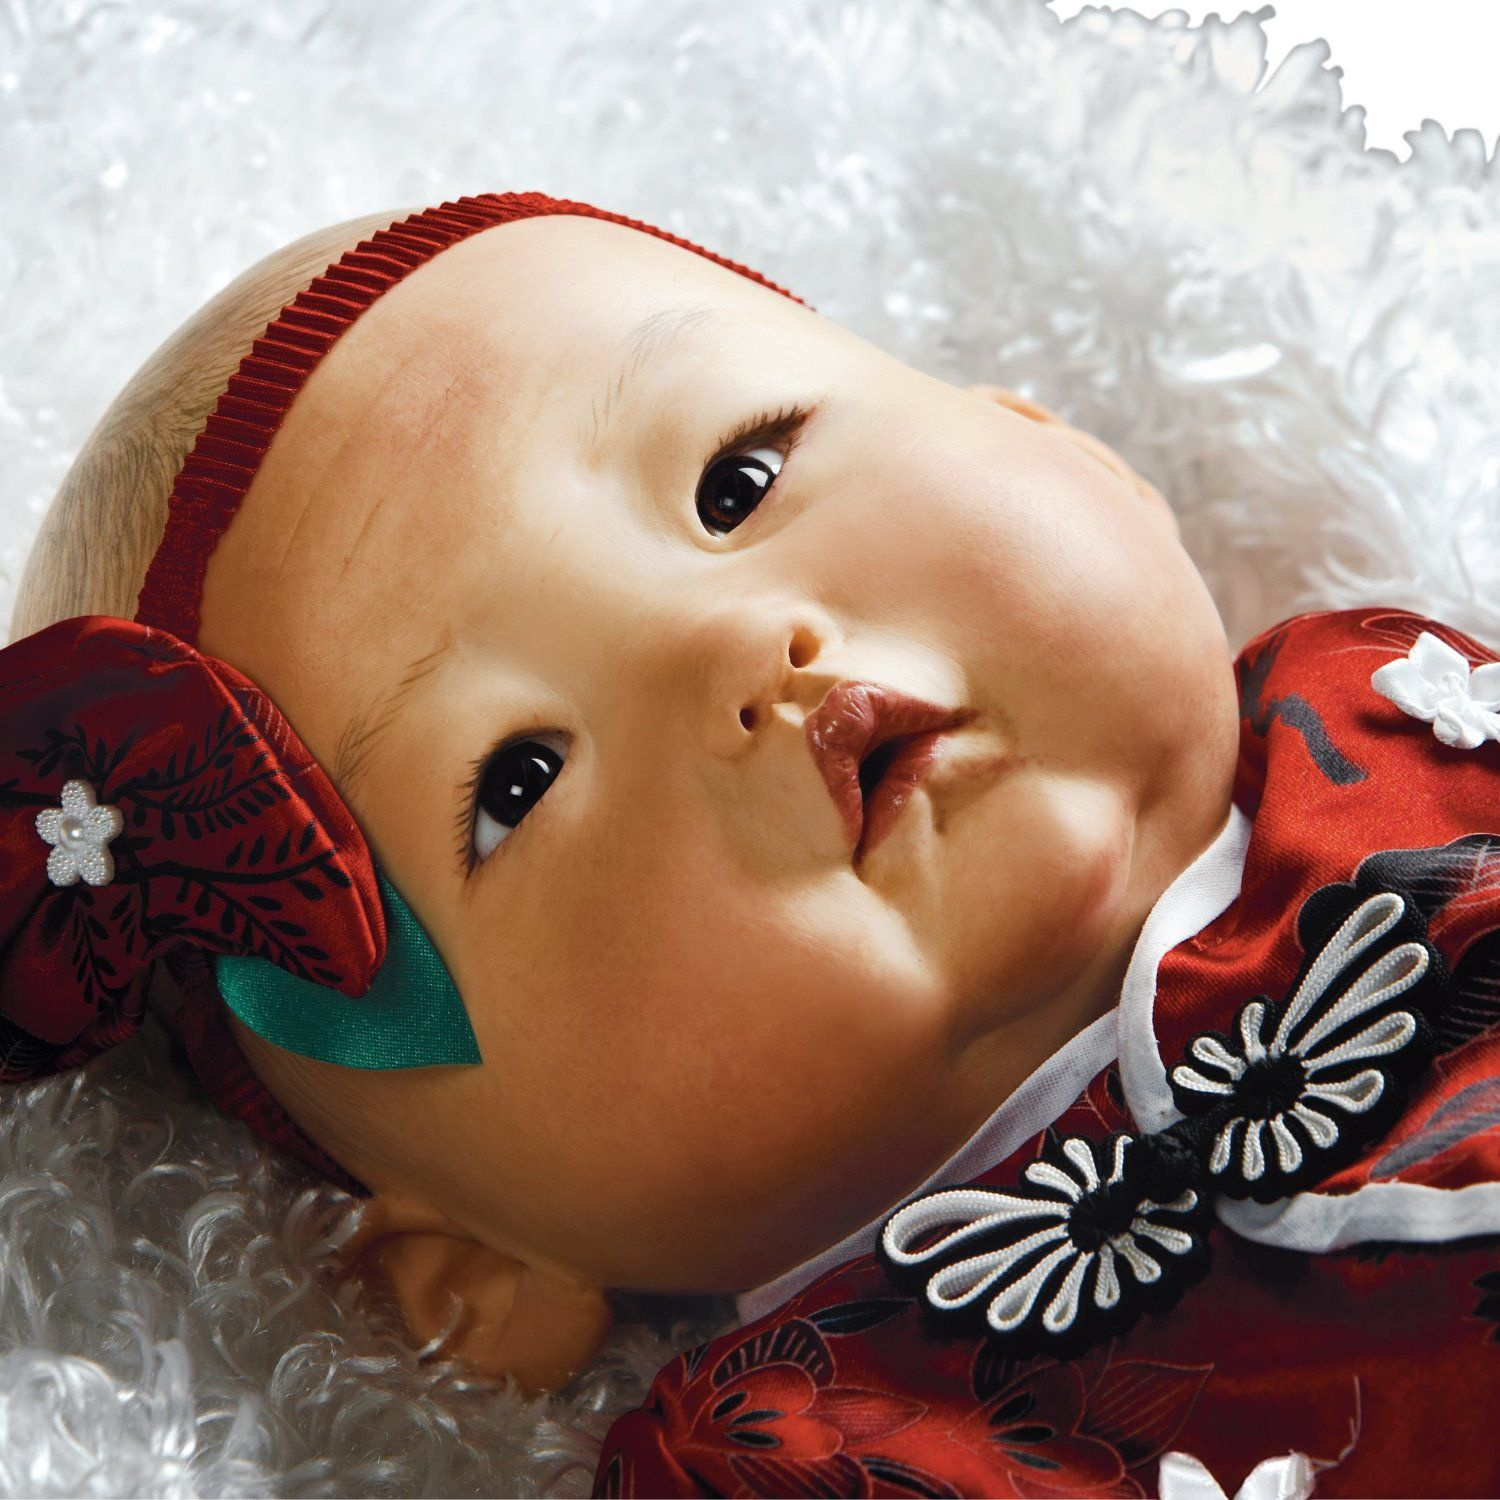 Amazon.com: Paradise Galleries Asian Baby Doll, Baby Mei ...